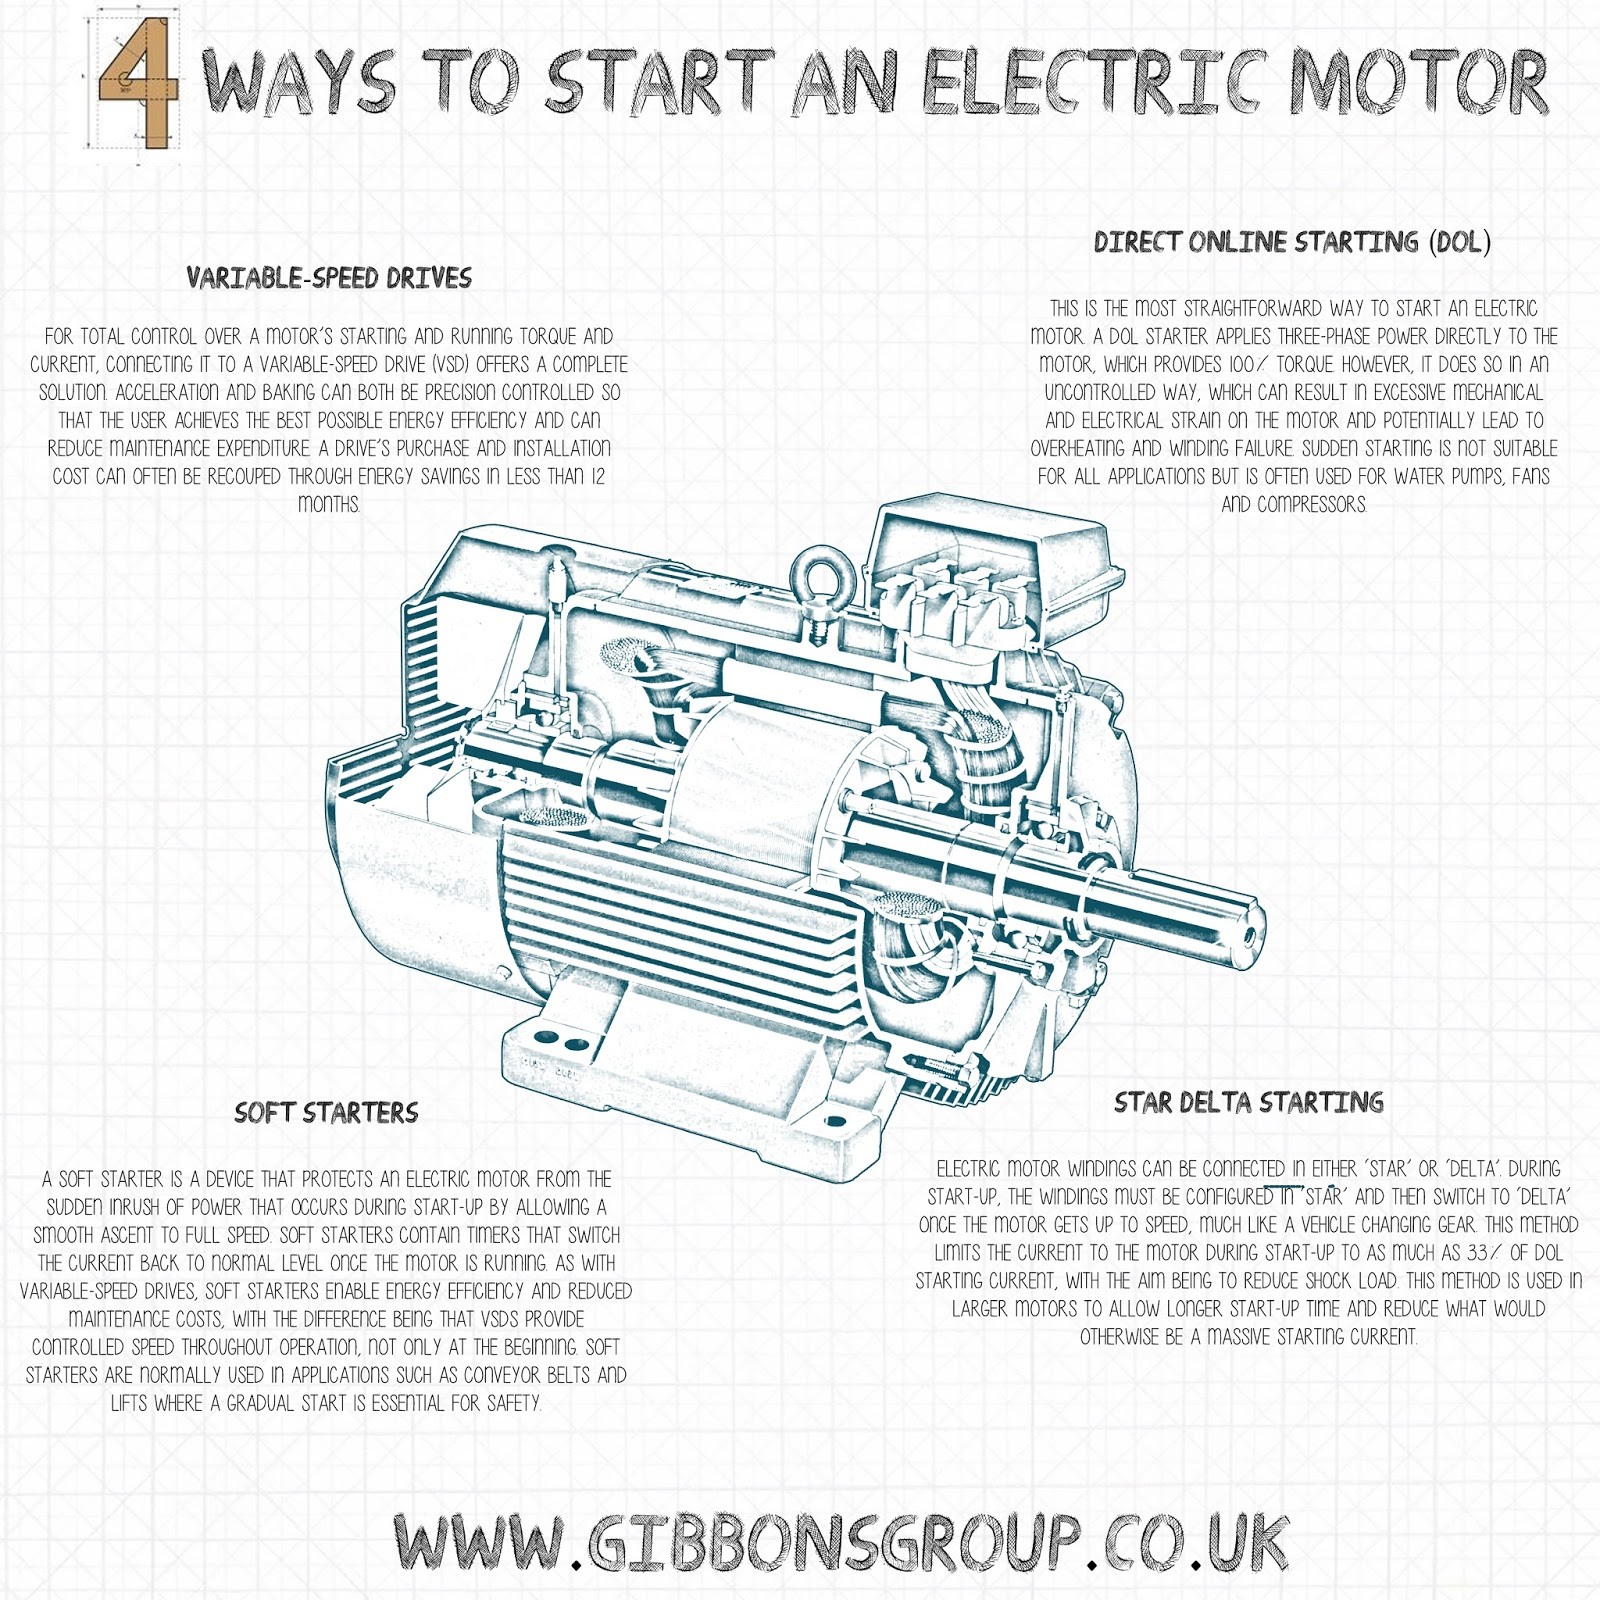 4 ways to start an electric motor - The Gibbons Group